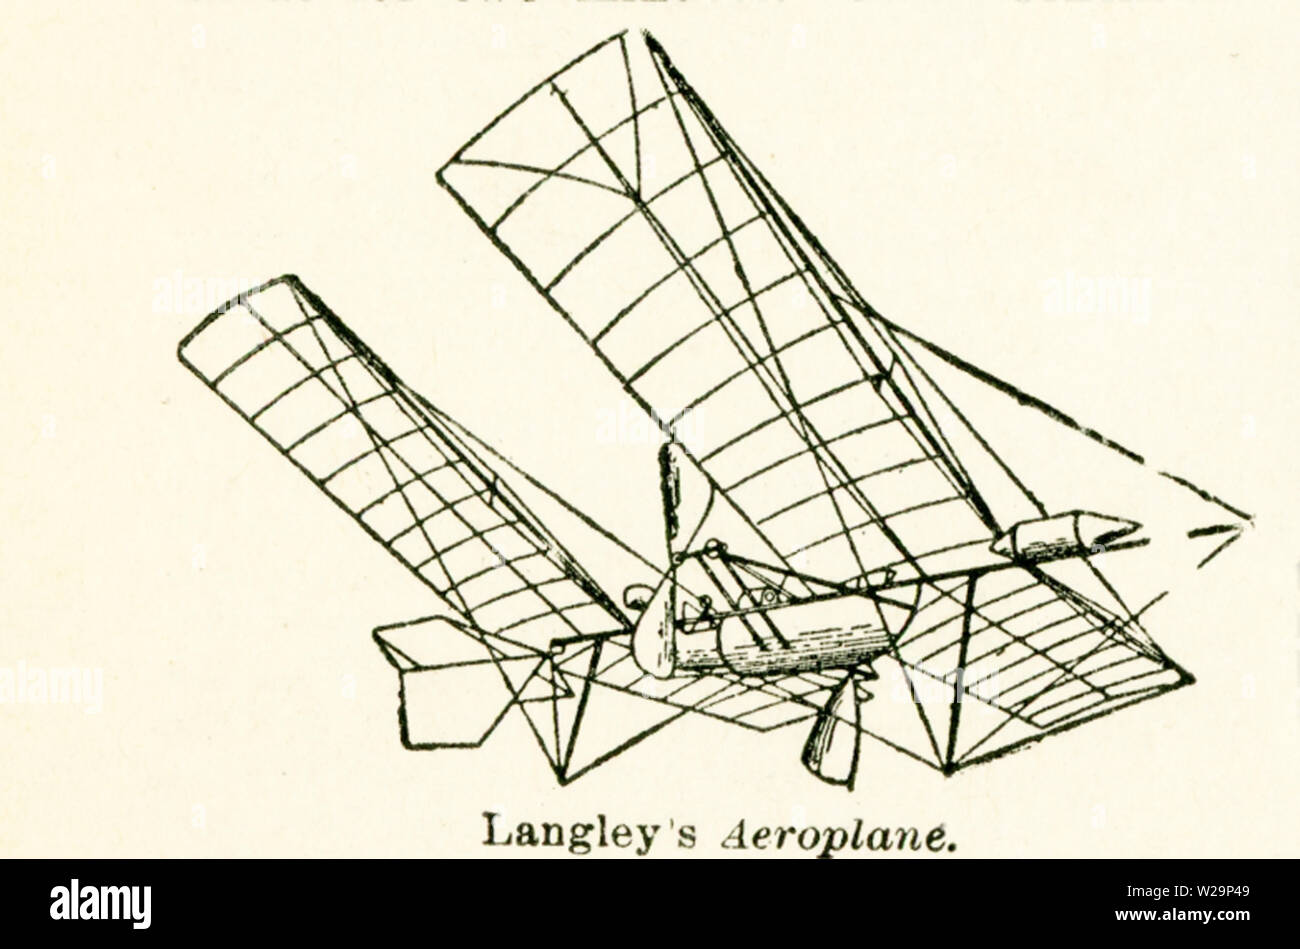 This Illustration Of Langley S Aeroplane Dates To The Early 1920s By Definition An Aeroplane Is A Flying Machine That Is Heavier Than Air And Sustained By Aid Of Propulsion From A Source